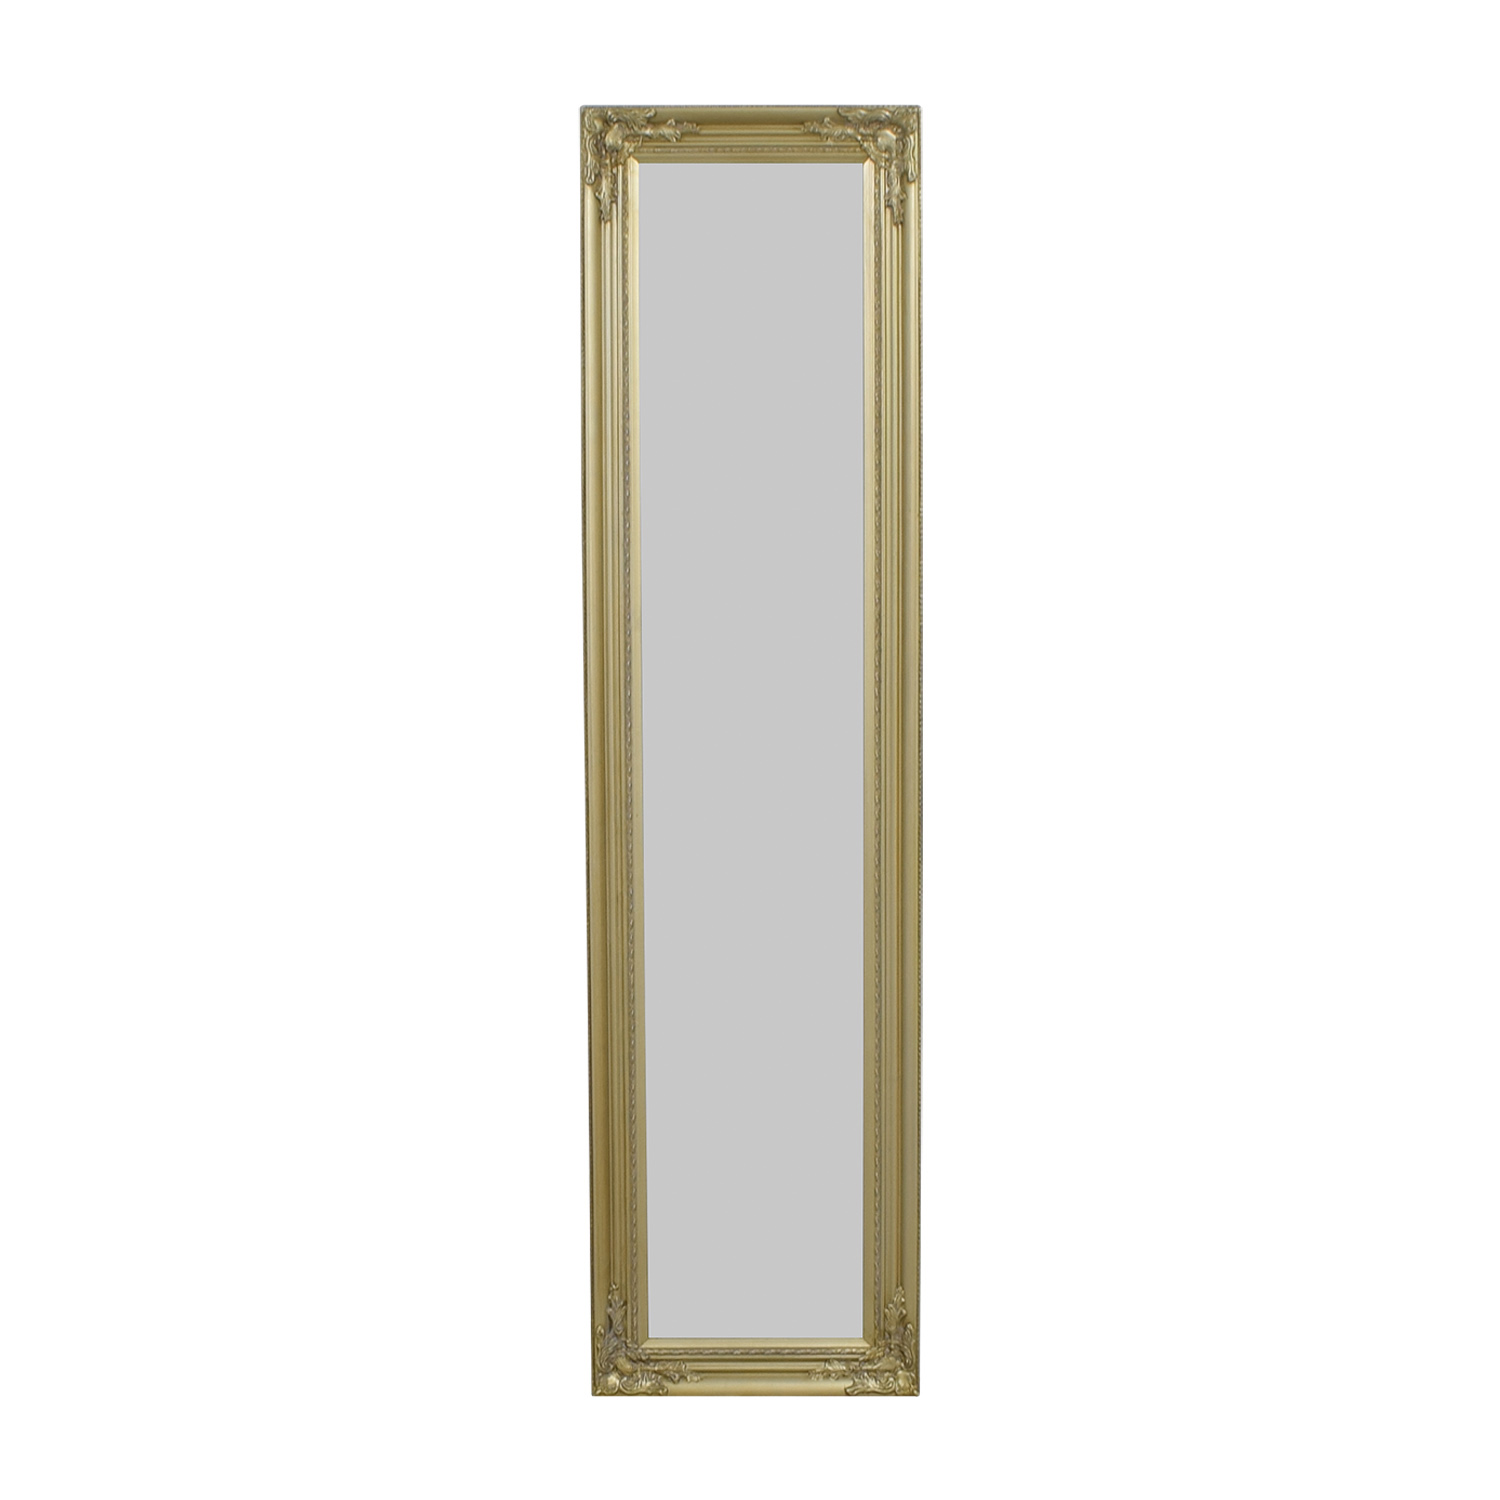 Full Length Ornate Gold Mirror